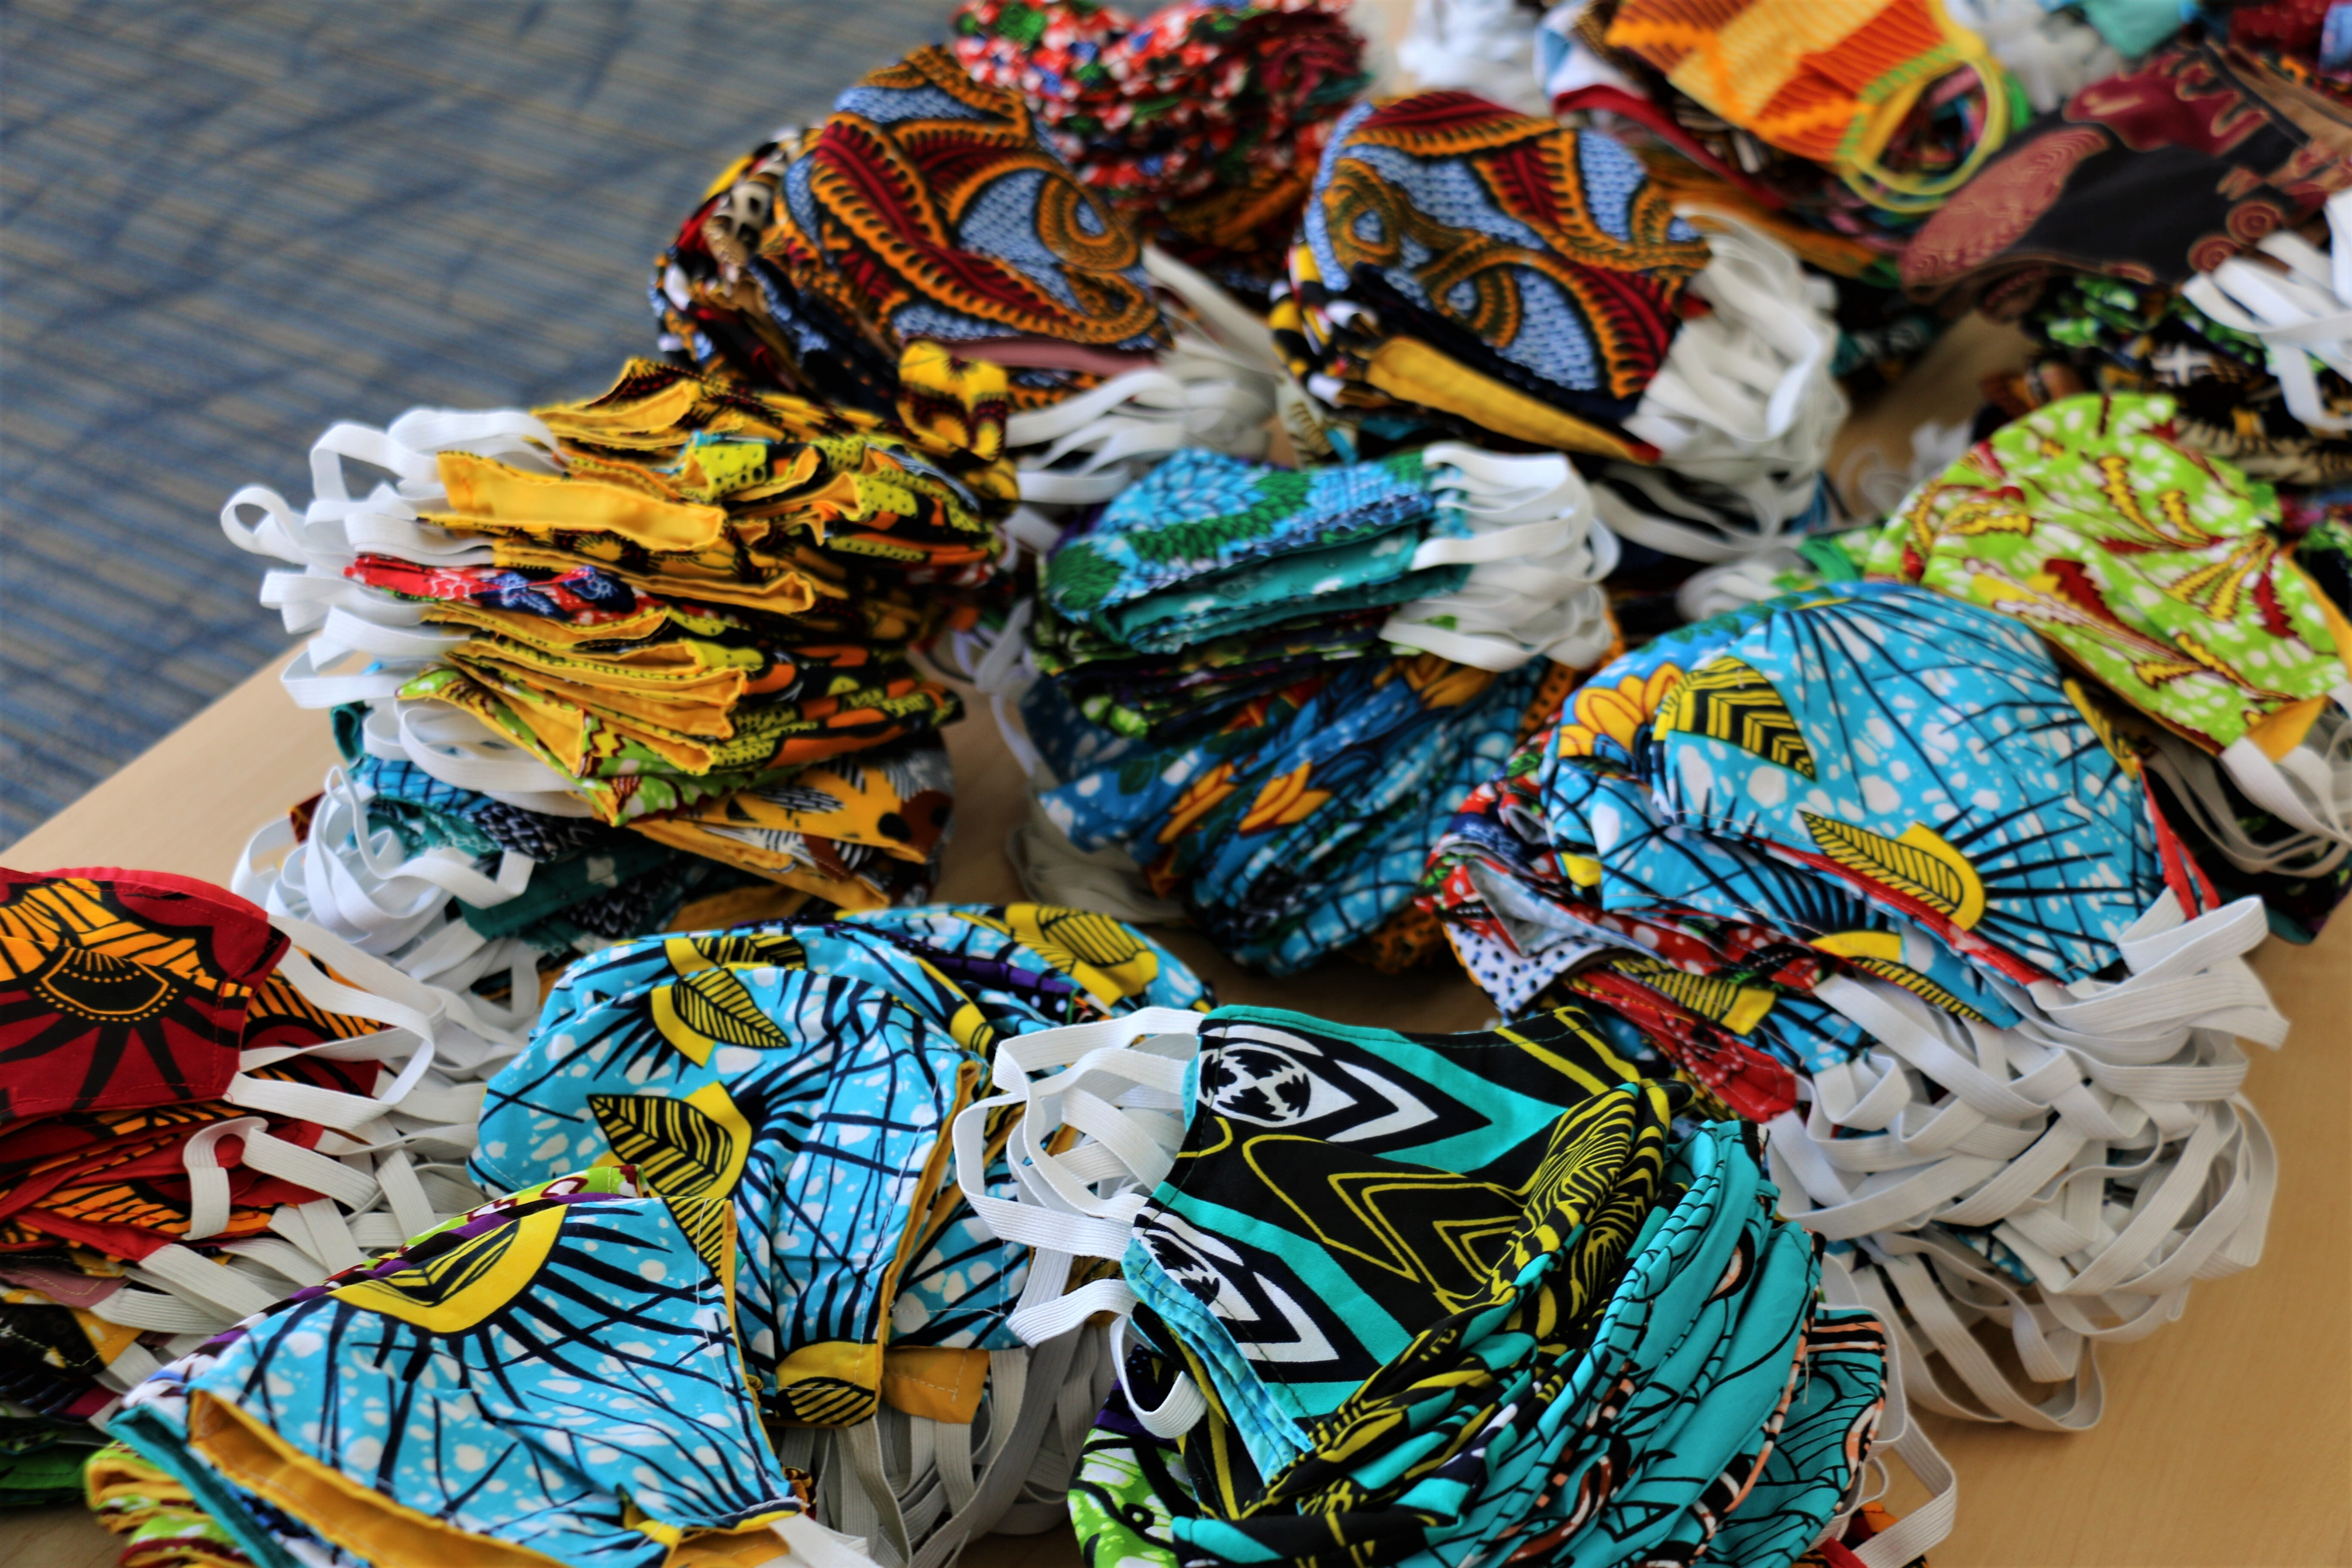 Mount Mercy University partners with local refugee group to sew masks for campus community